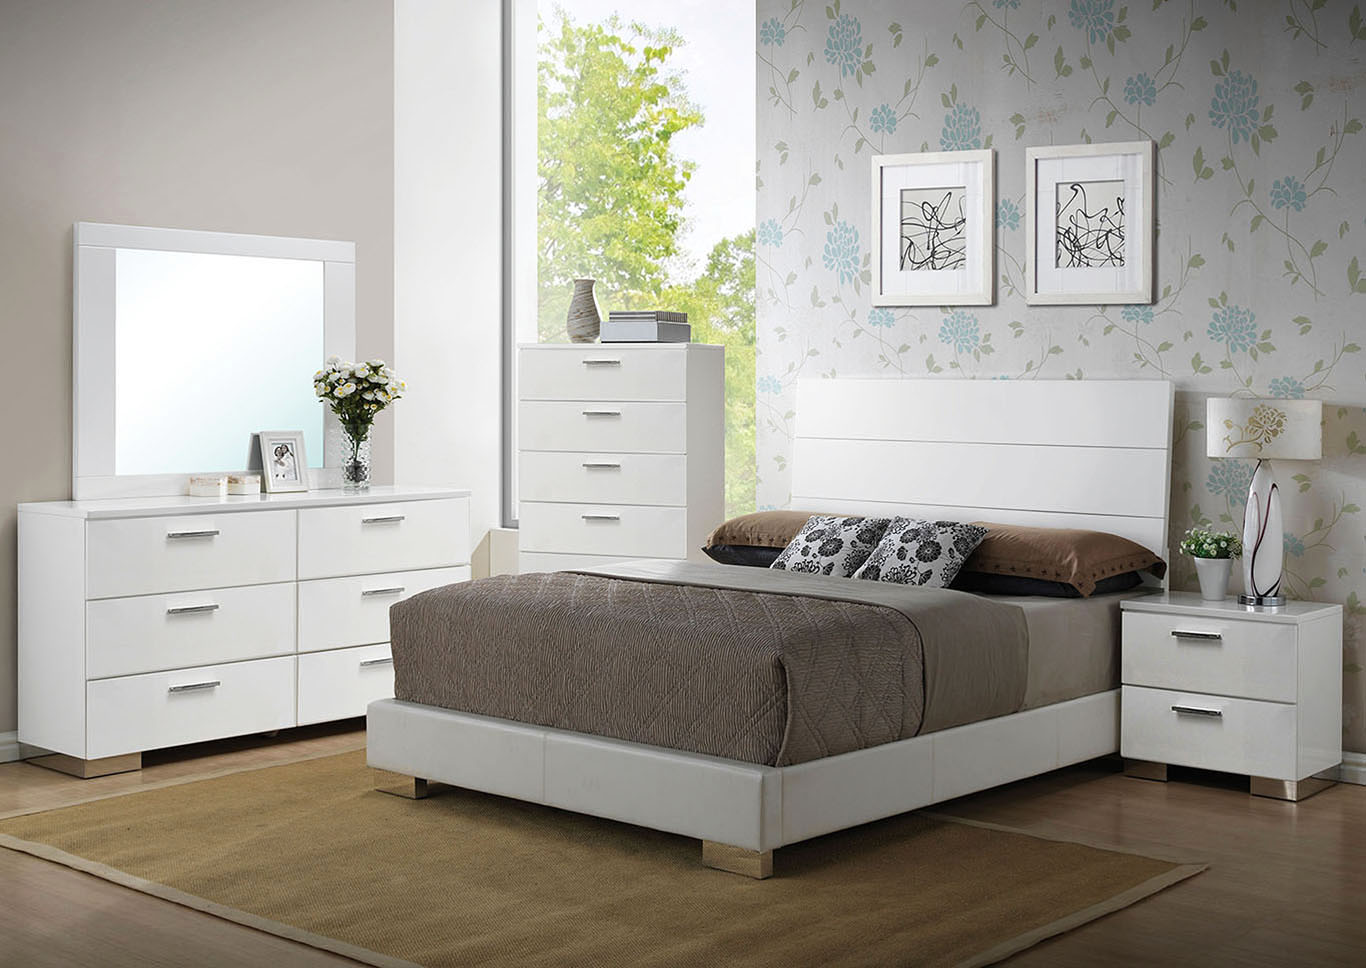 Lorimar White Queen Platform Bed w/Dresser and Mirror,Acme